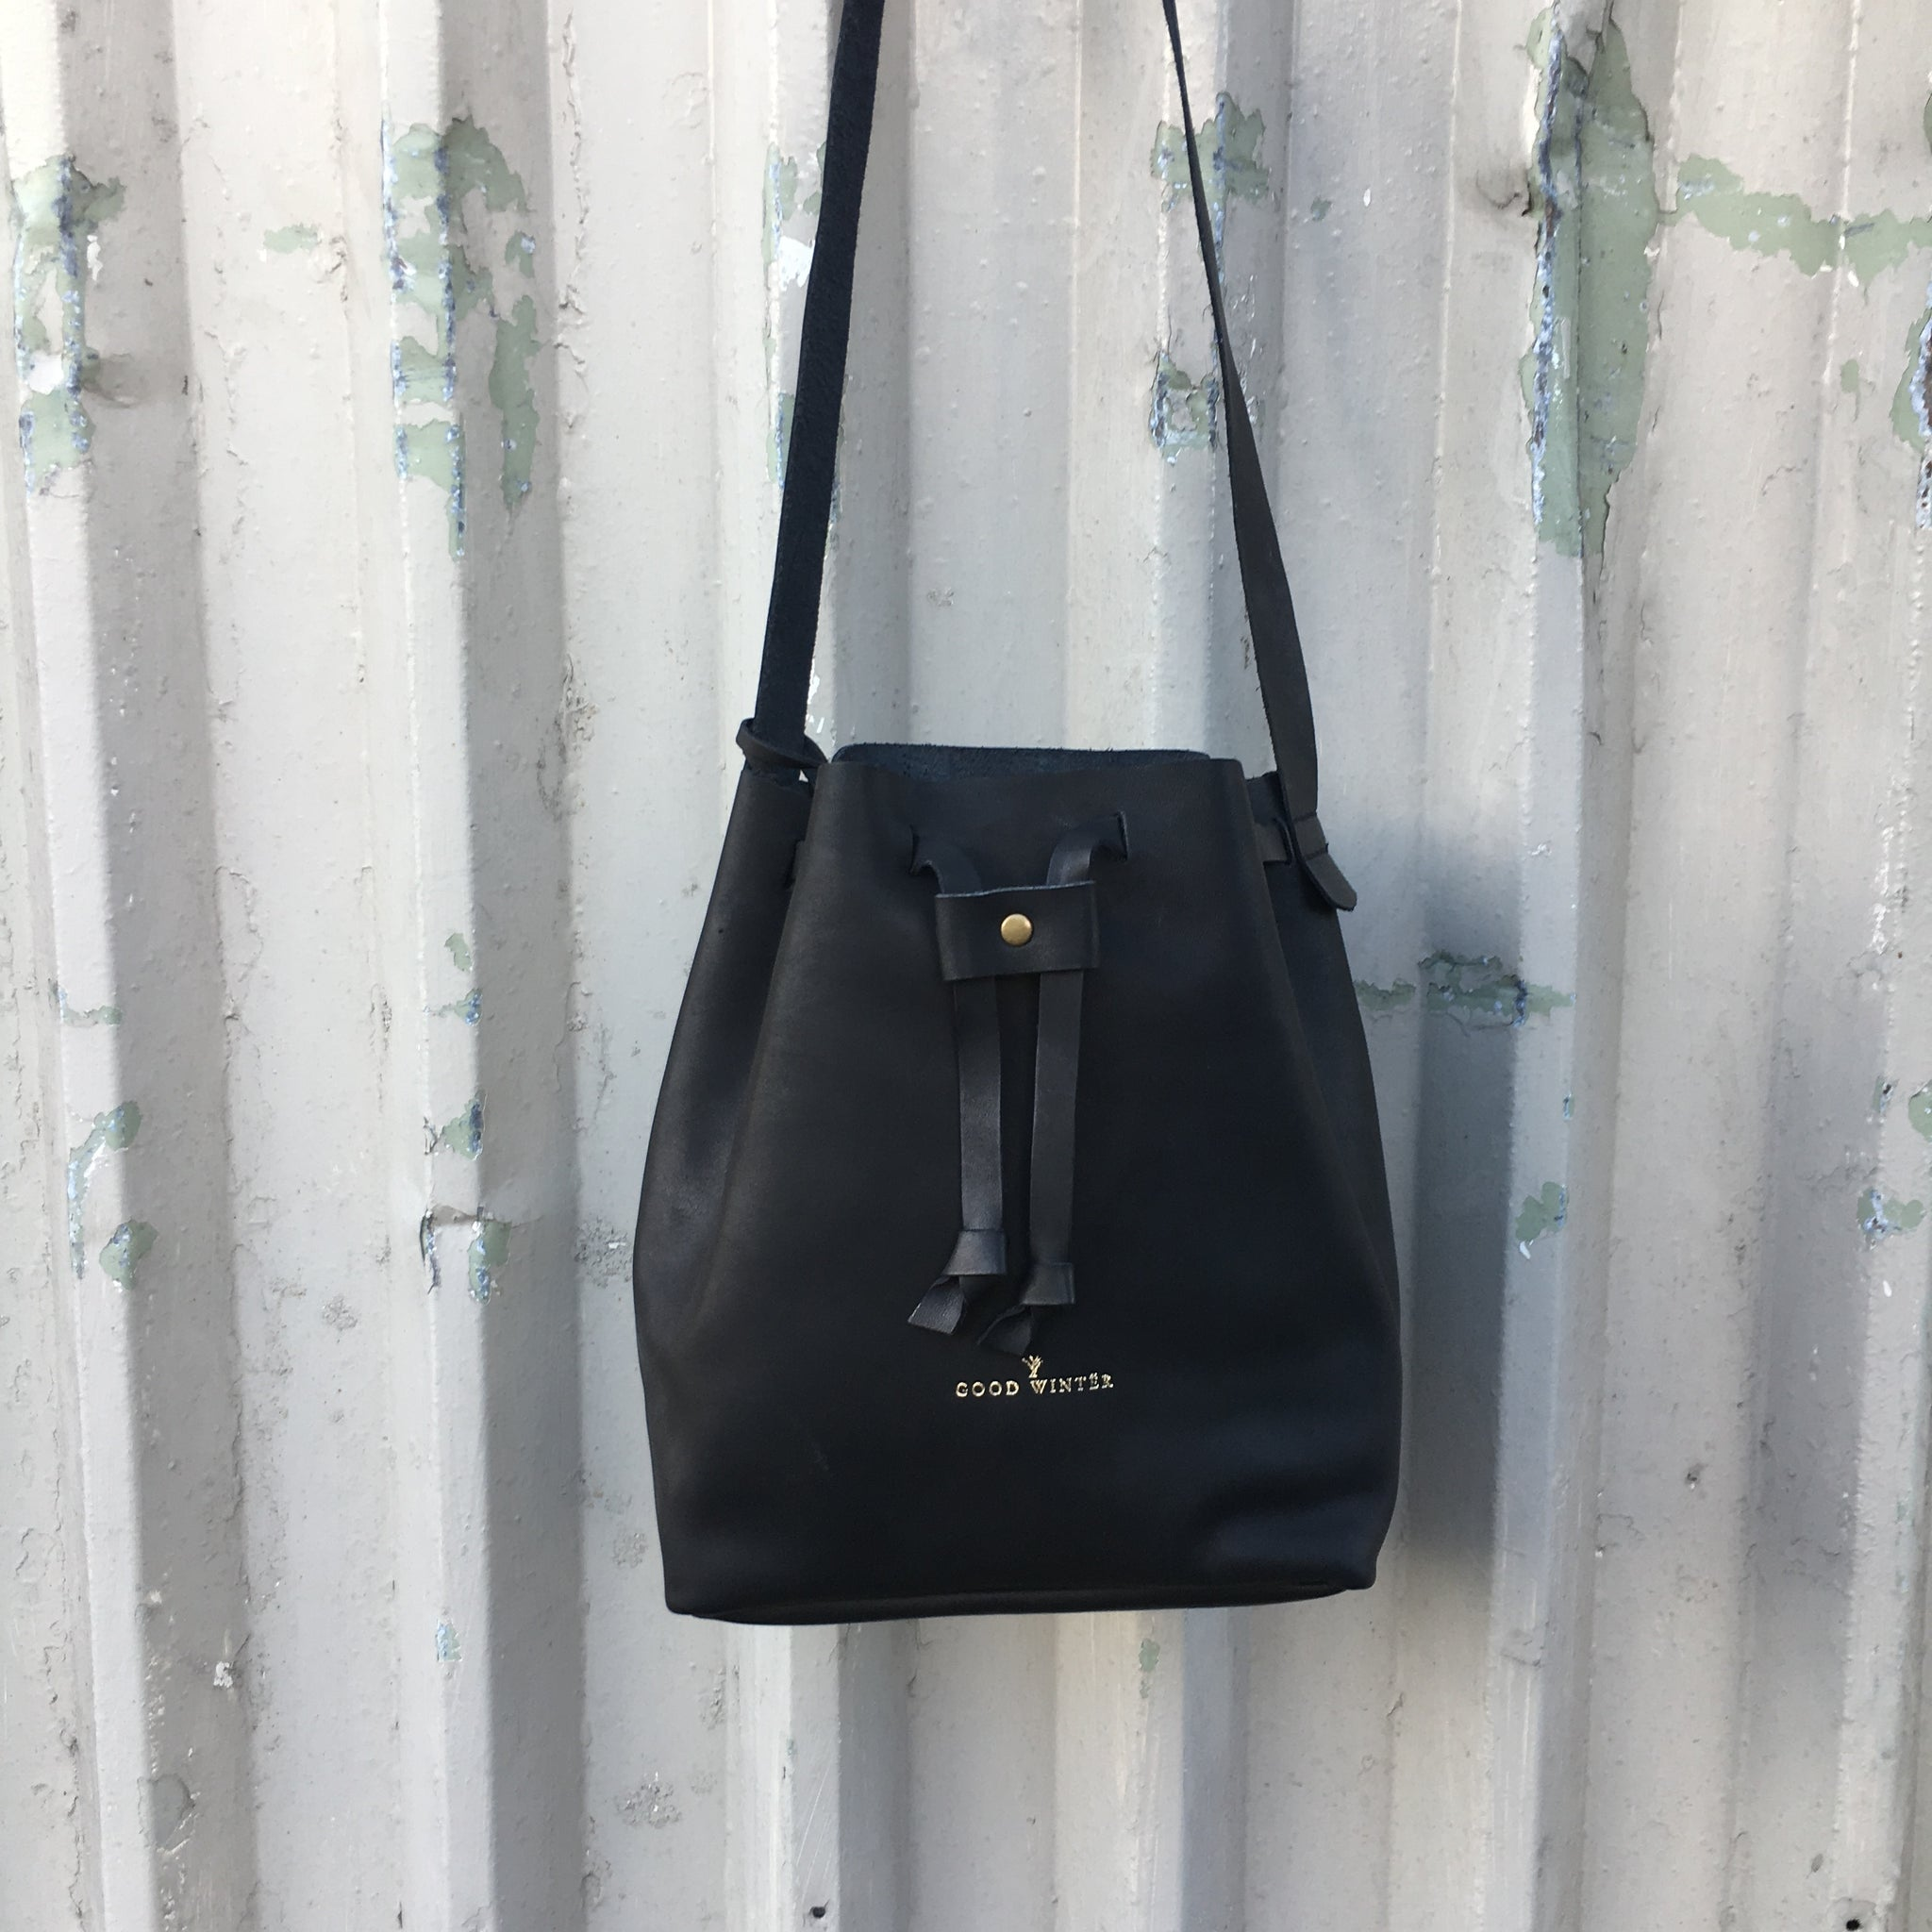 GW2 Bucket Bag Medium Black